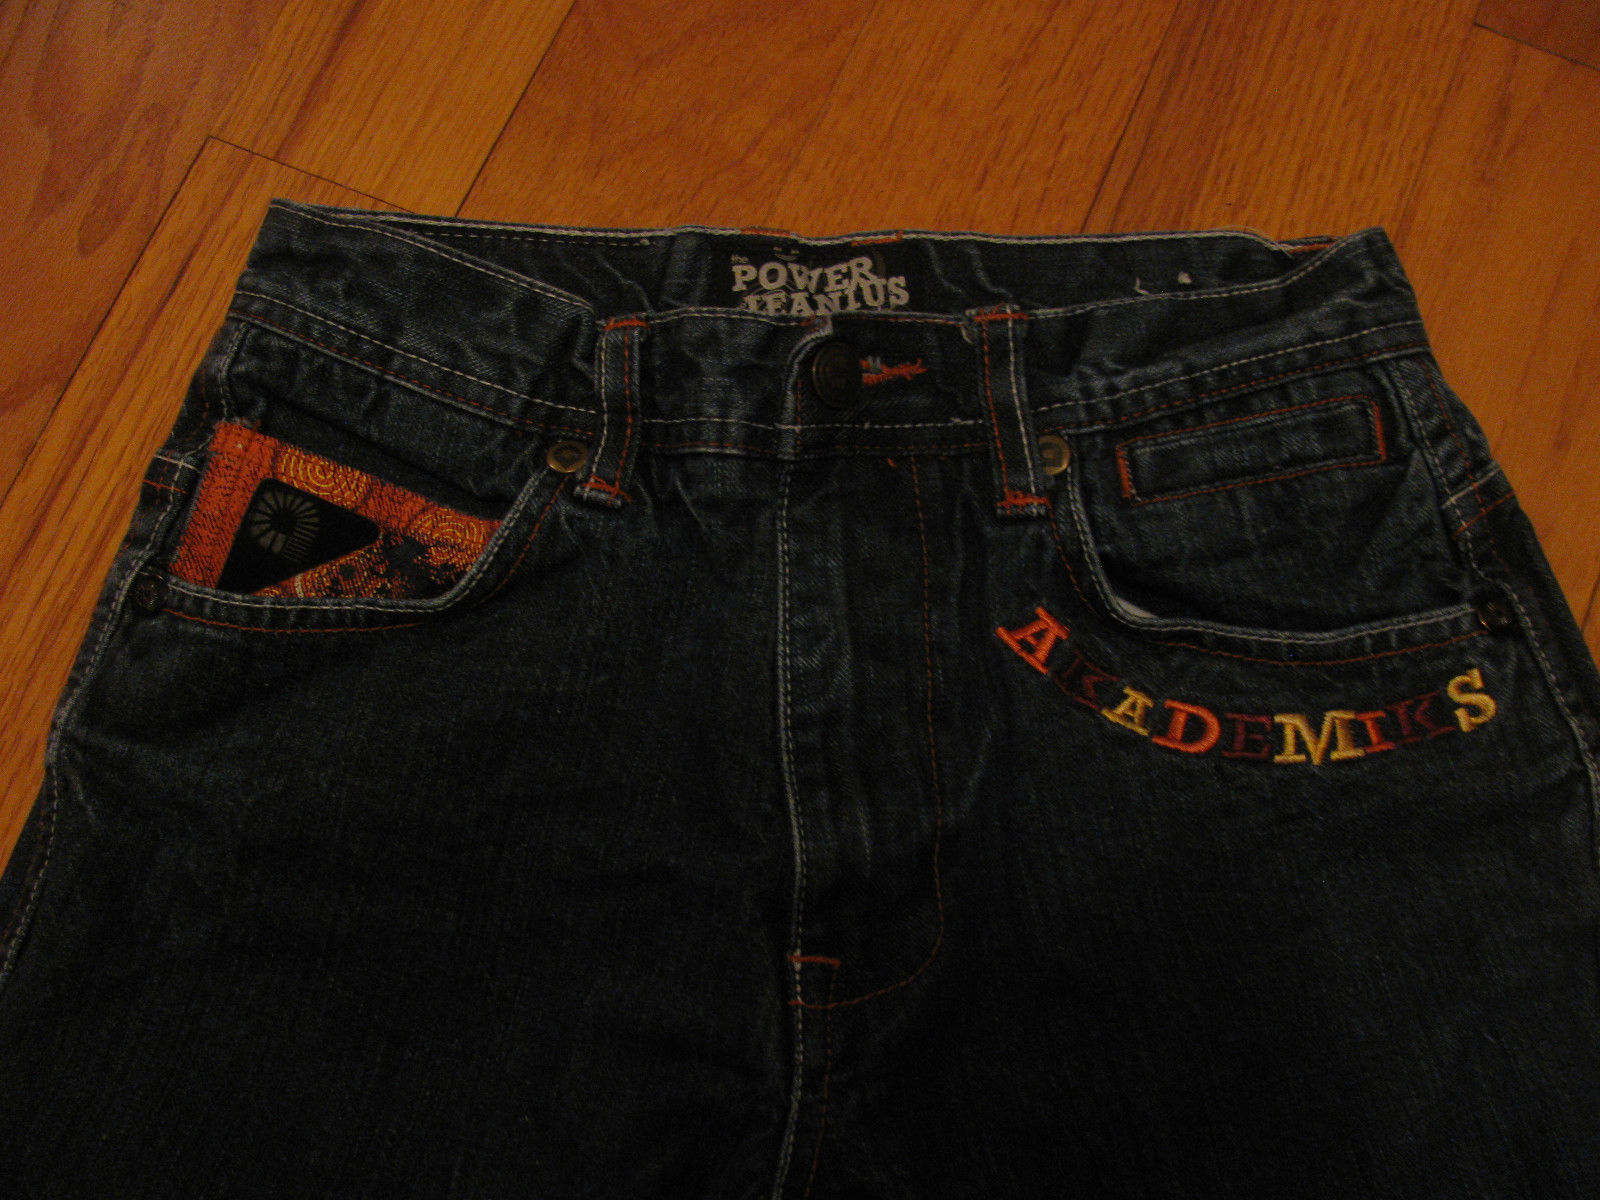 JEANS AKADEMIKS DENIUM JEANS THE POWER OF JEANIUS SIZE12 EMBELLISHED EMBROIRERY  image 7